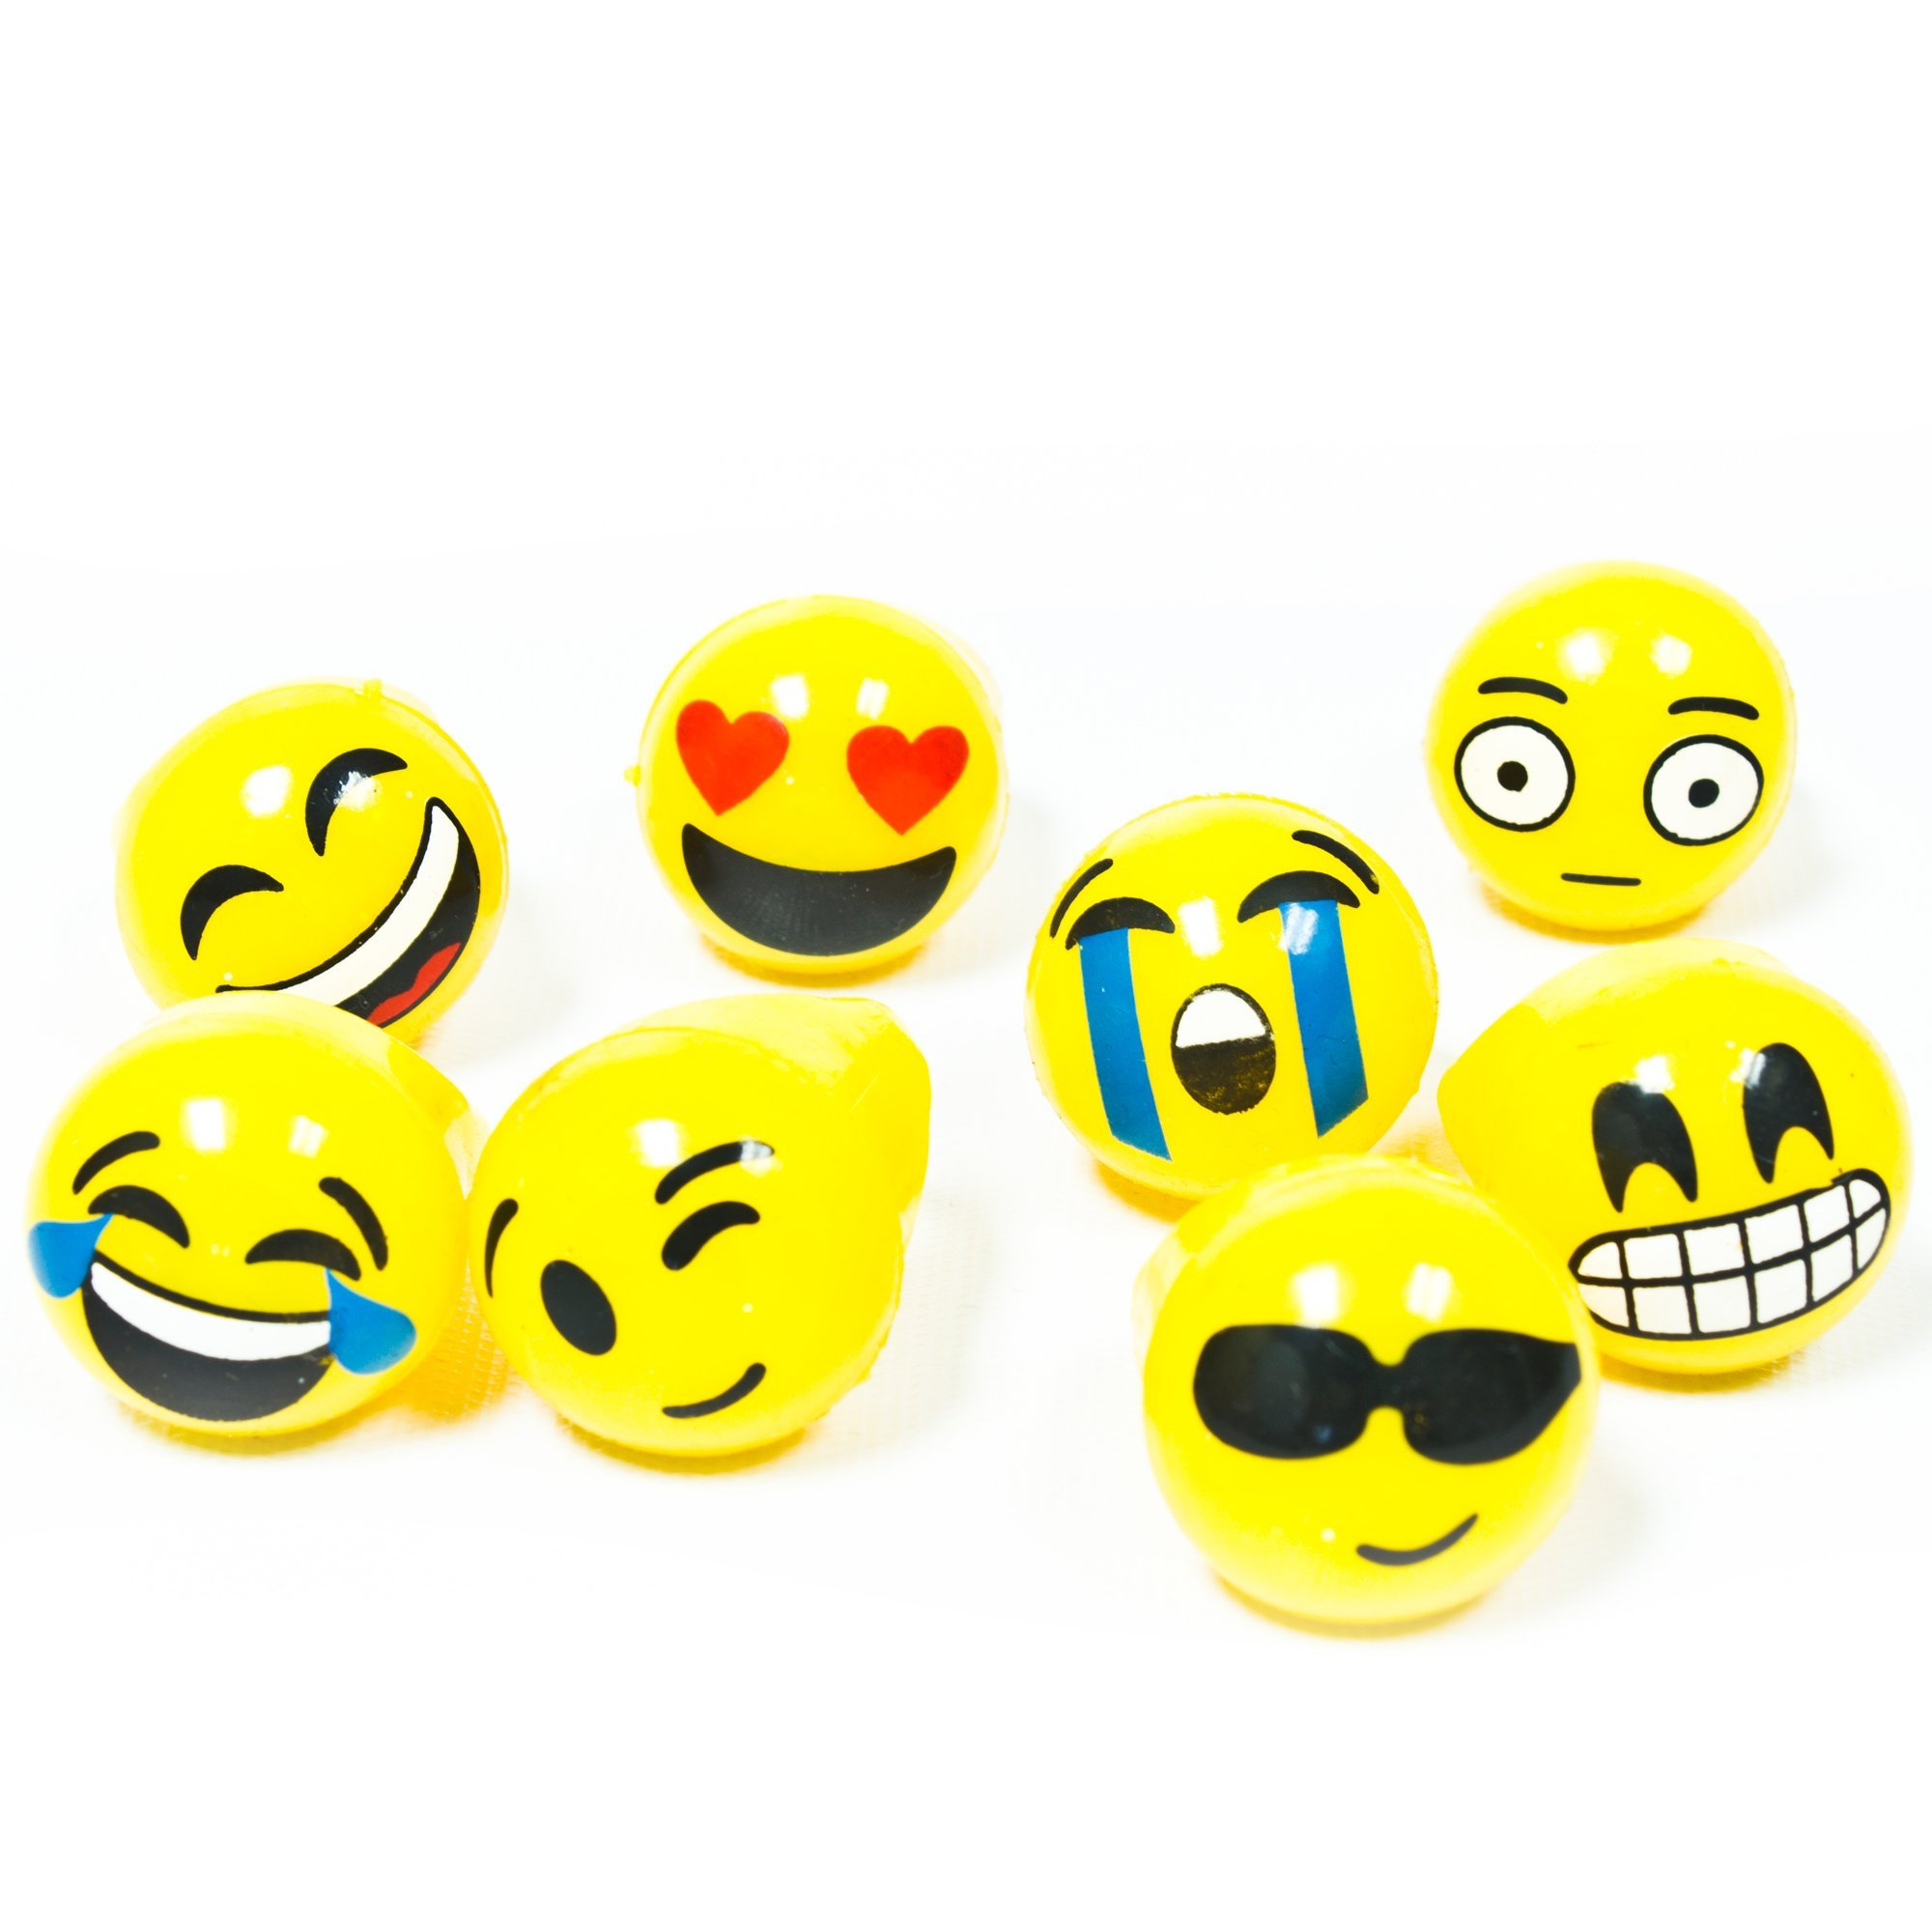 Fun Central 24 Pack - LED Jelly Emoji Rings - Flashing Emoji Party Supplies and Decorations - 8 Designs by Fun Central